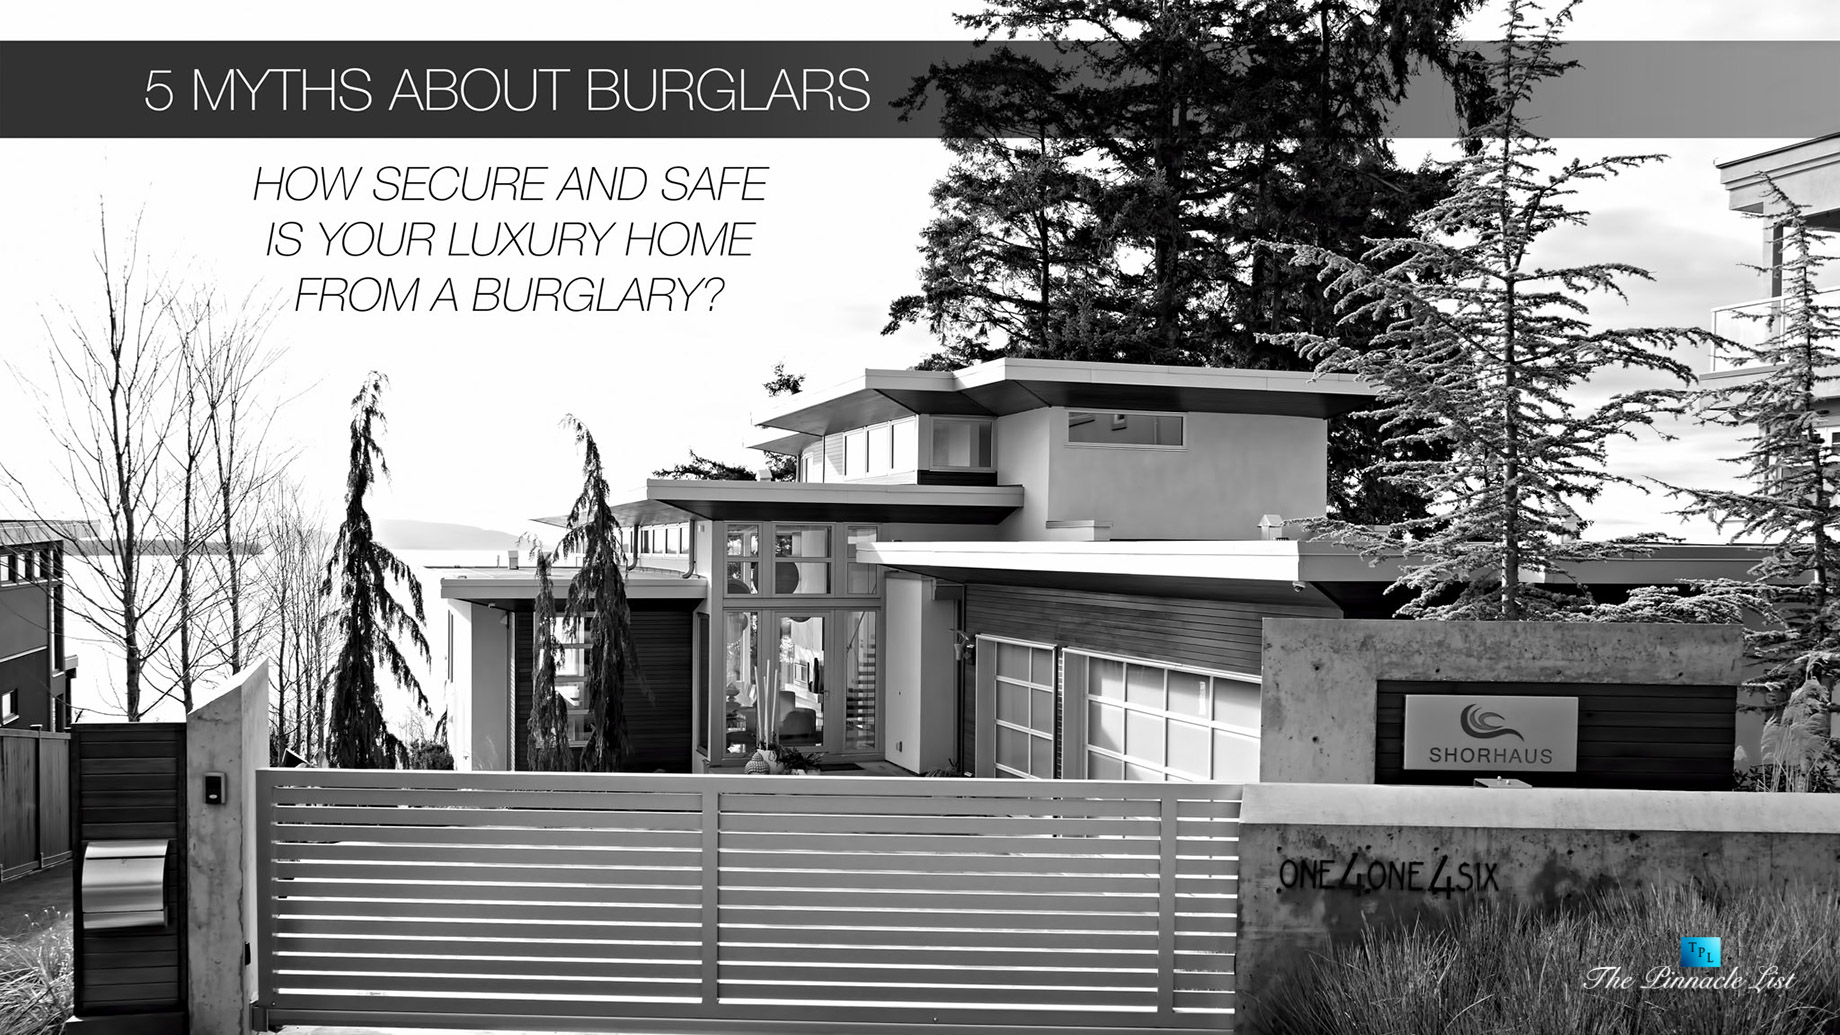 5 Myths About Burglars - How Secure and Safe is Your Luxury Home from a Burglary